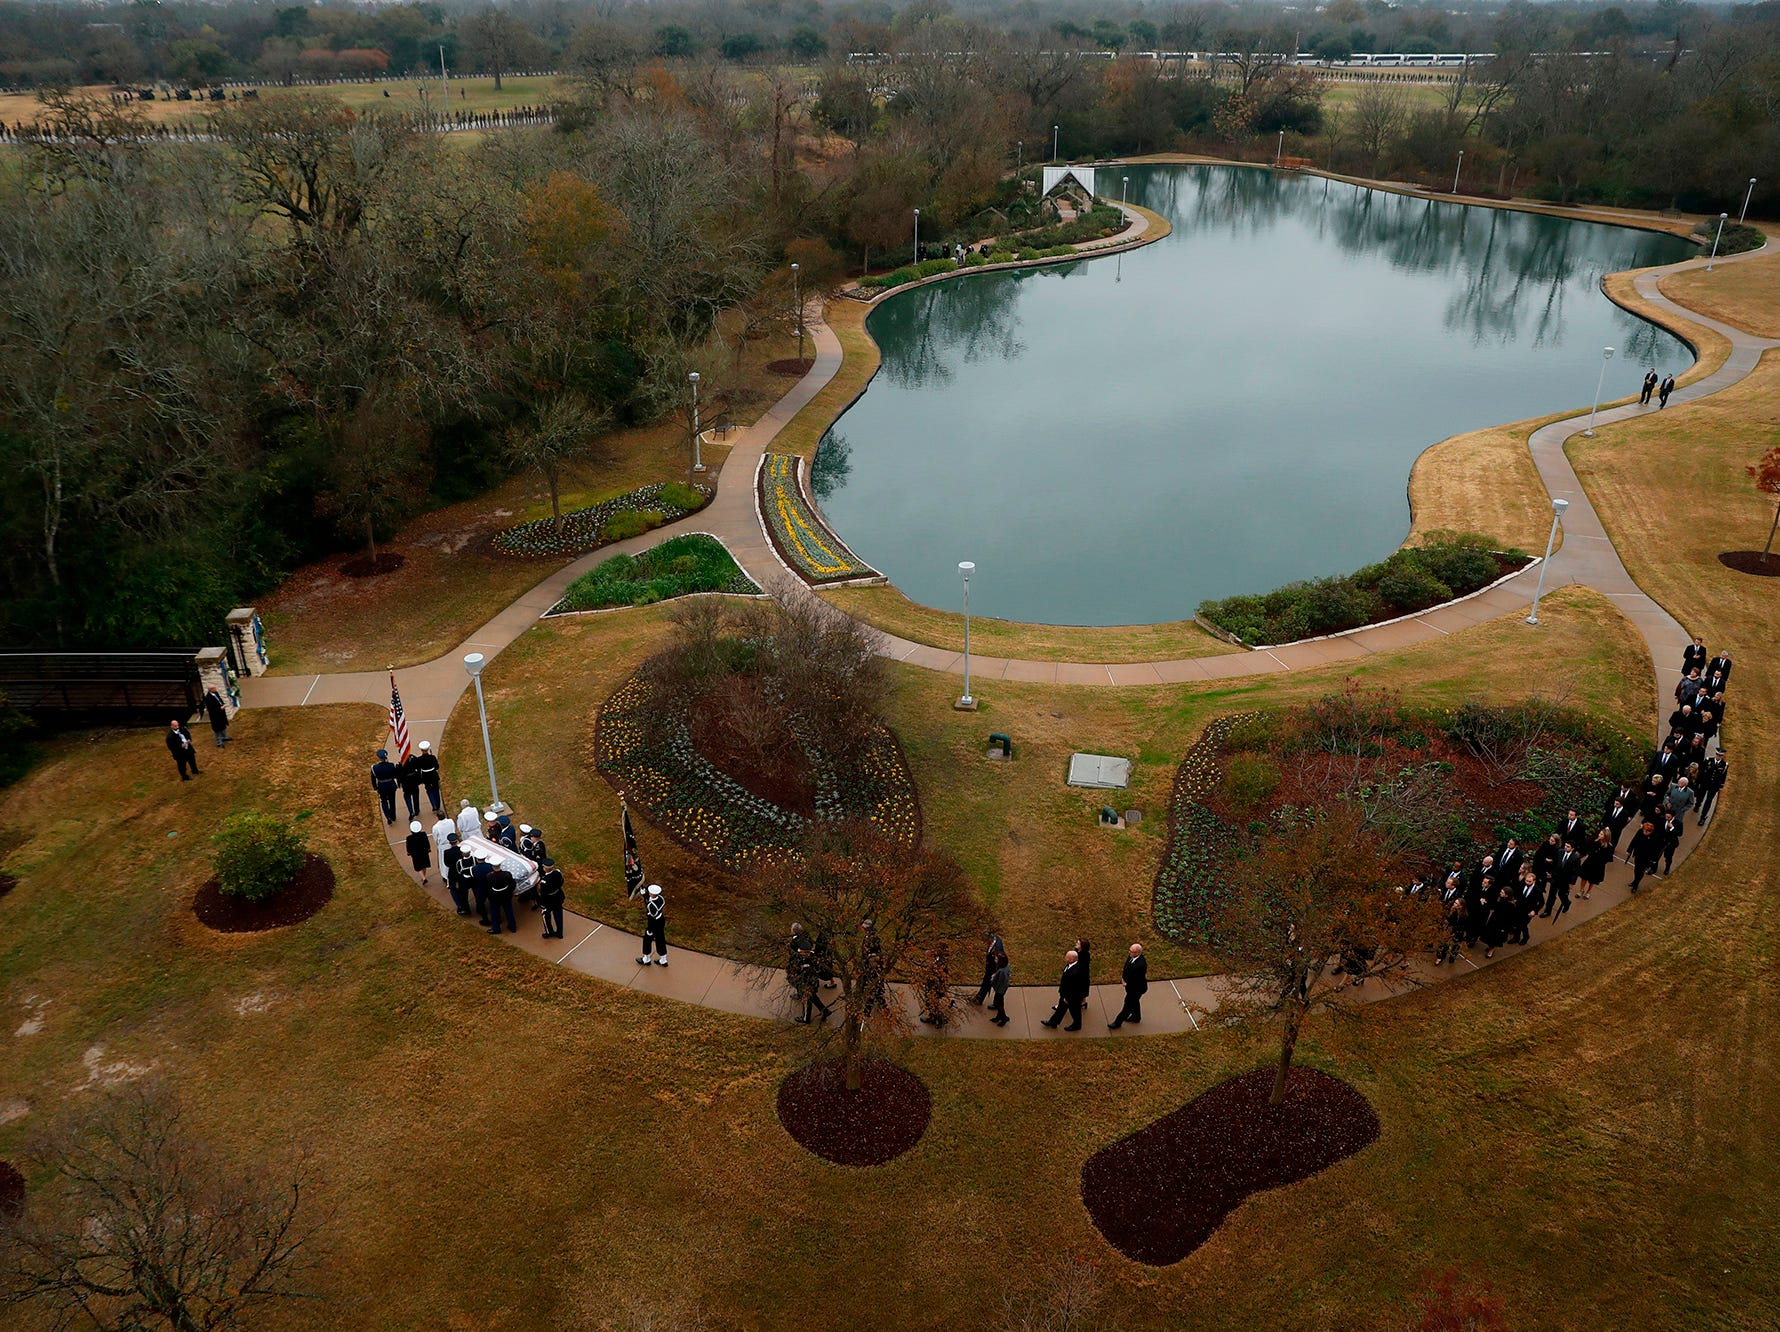 The flag-draped casket of former President George H.W. Bush is carried by a joint services military honor guard followed by family members at the George H.W. Bush Presidential Library and Museum Thursday, Dec. 6, 2018, in College Station, Texas.